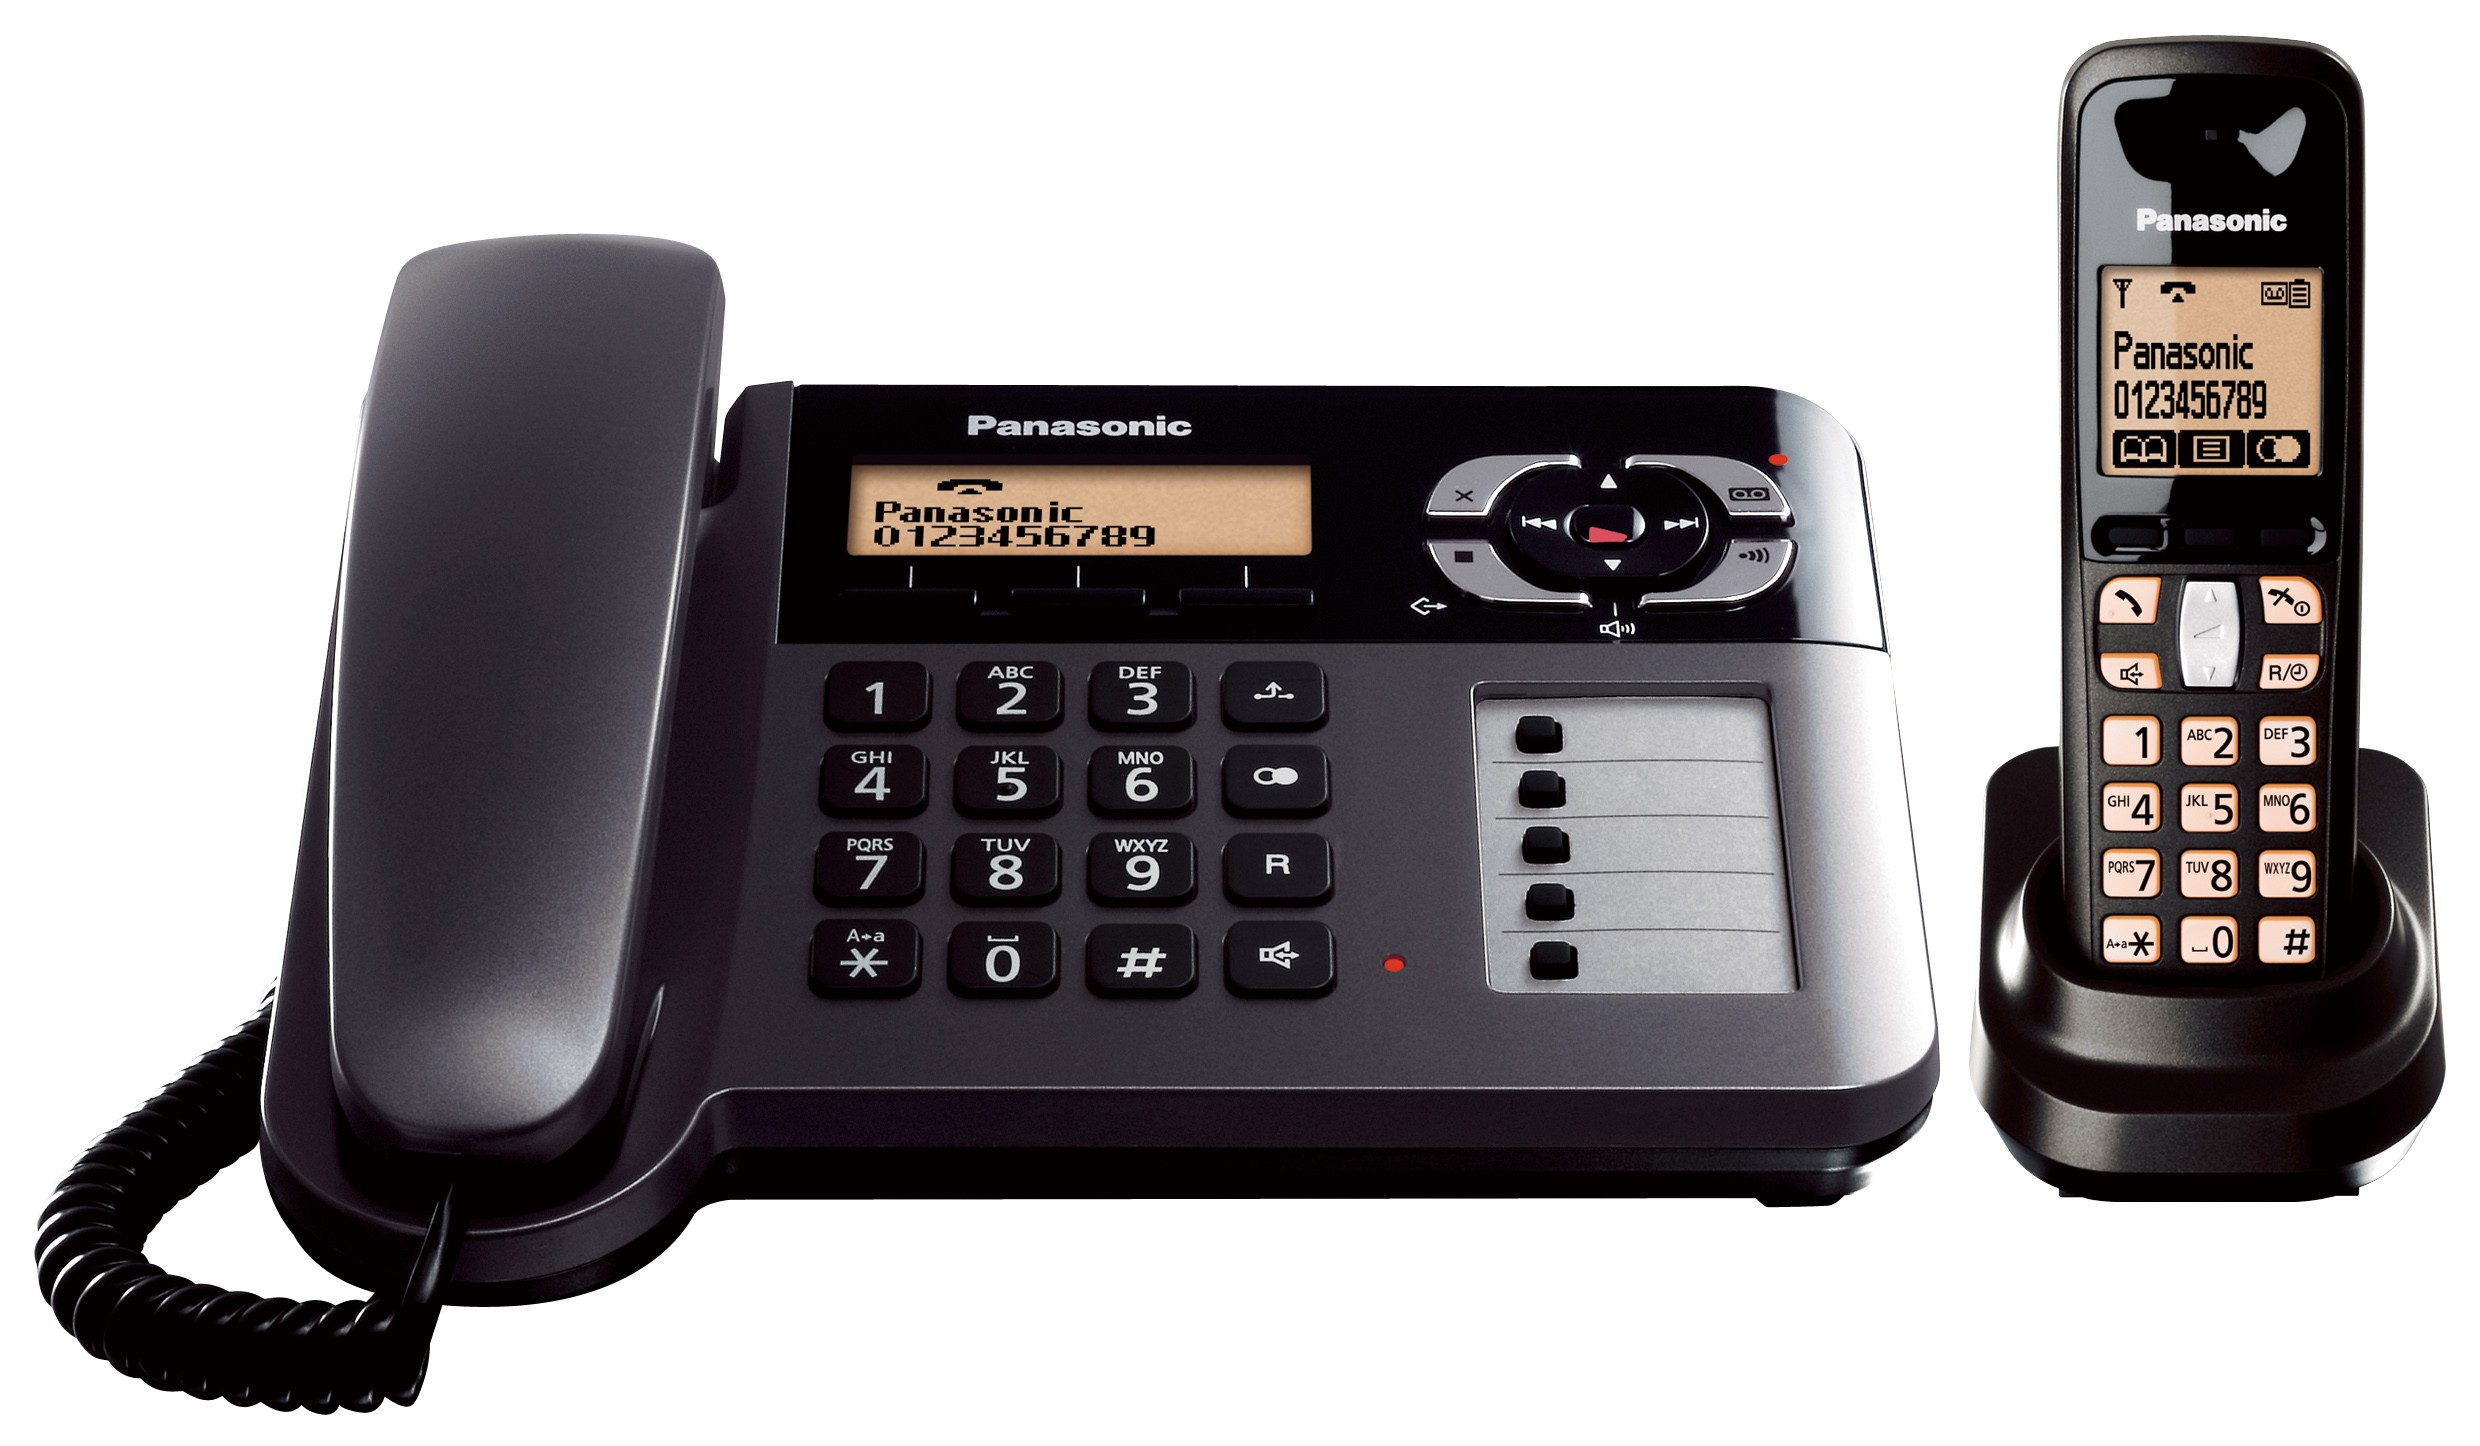 Panasonic KX-TG6461 ET Corded & Cordless DECT Phone With Answering Machine